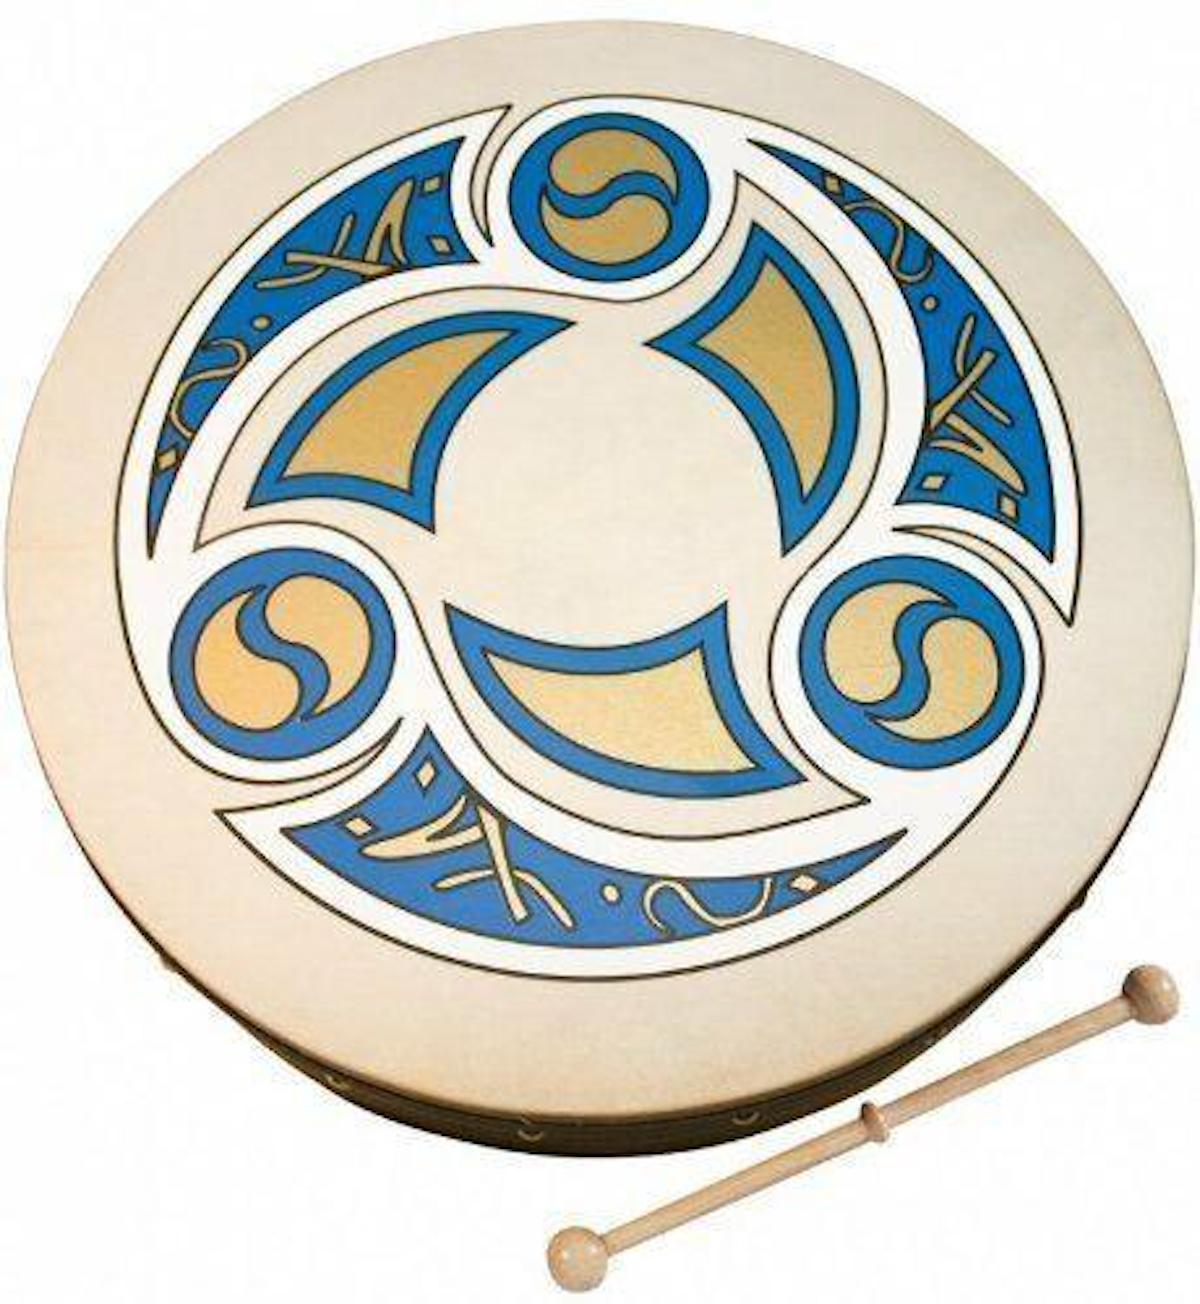 "Percussion Plus 18"" Bodhran with Trinity Celtic Design"